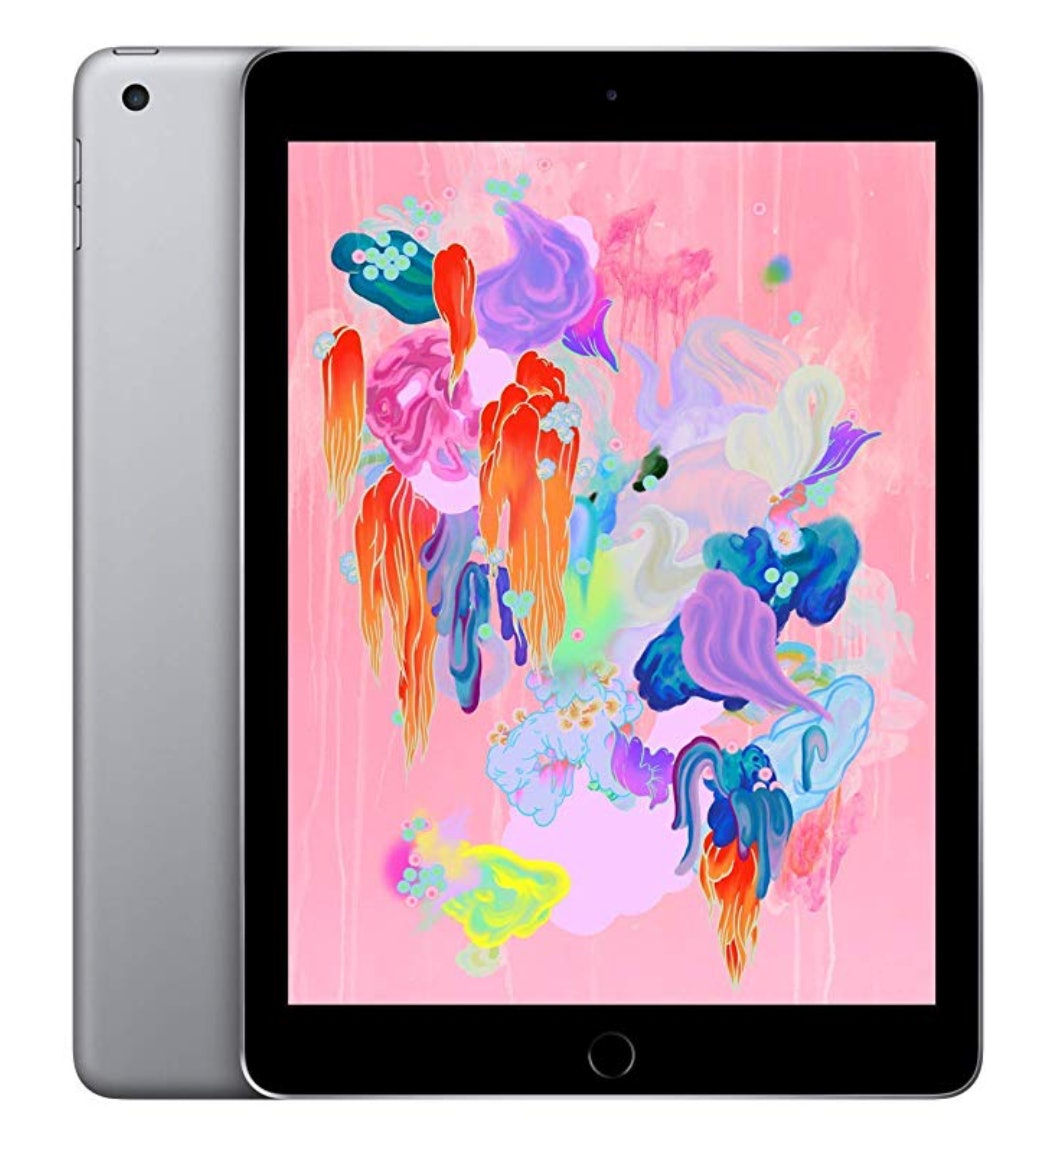 iPad deals Amazon Prime Day